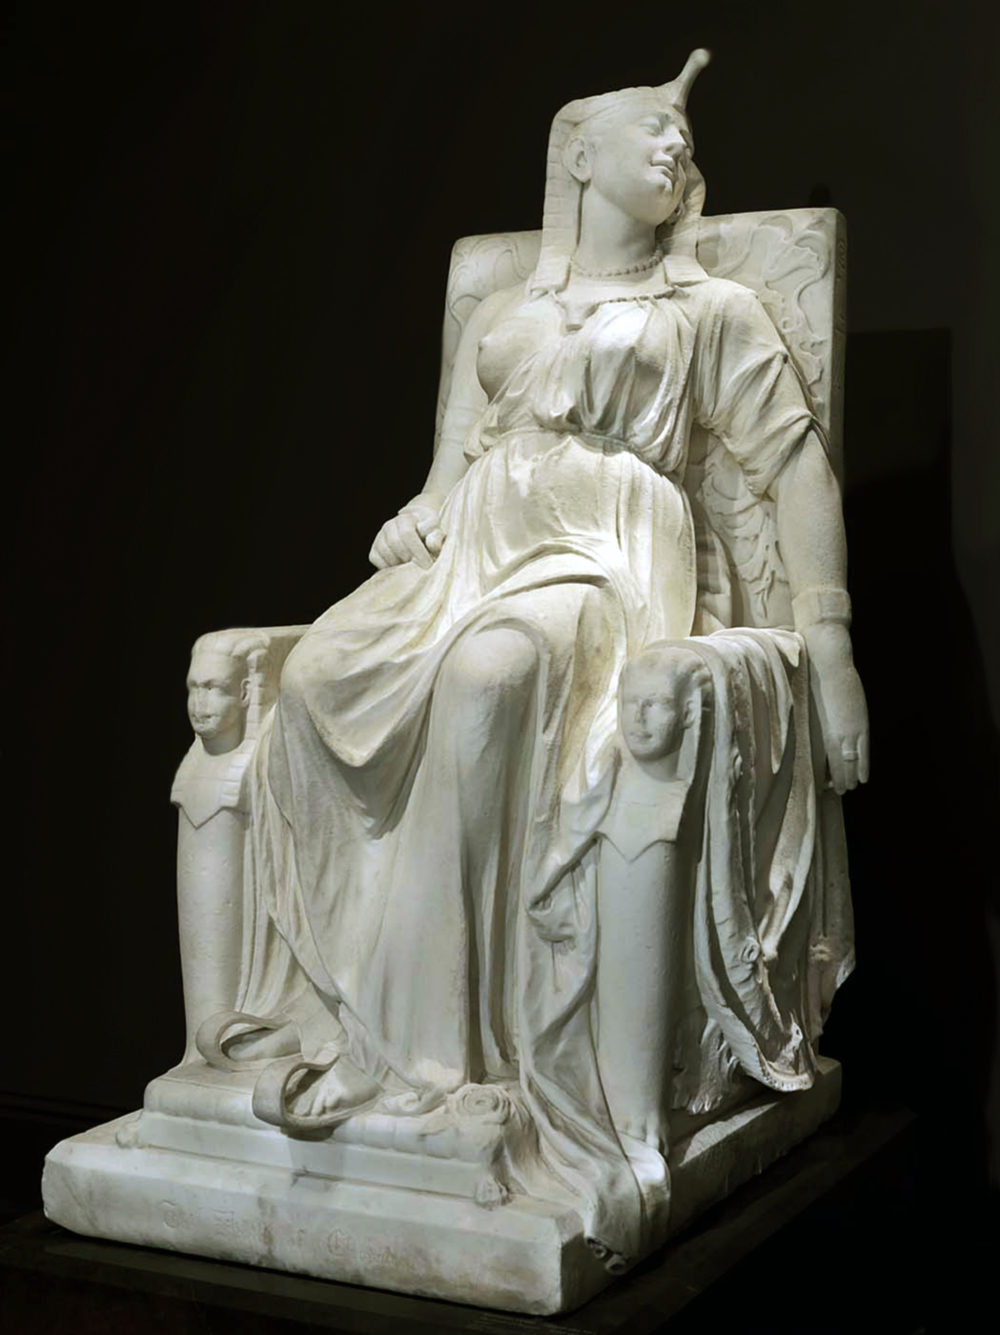 The Death of Cleopatra, a monumental 3,015-pound marble sculpture created for the 1876 Centennial Exposition in Philadelphia. After being lost for a century, the sculpture can now be found at the Smithsonian American Art Museum. Source: Wikipedia.org